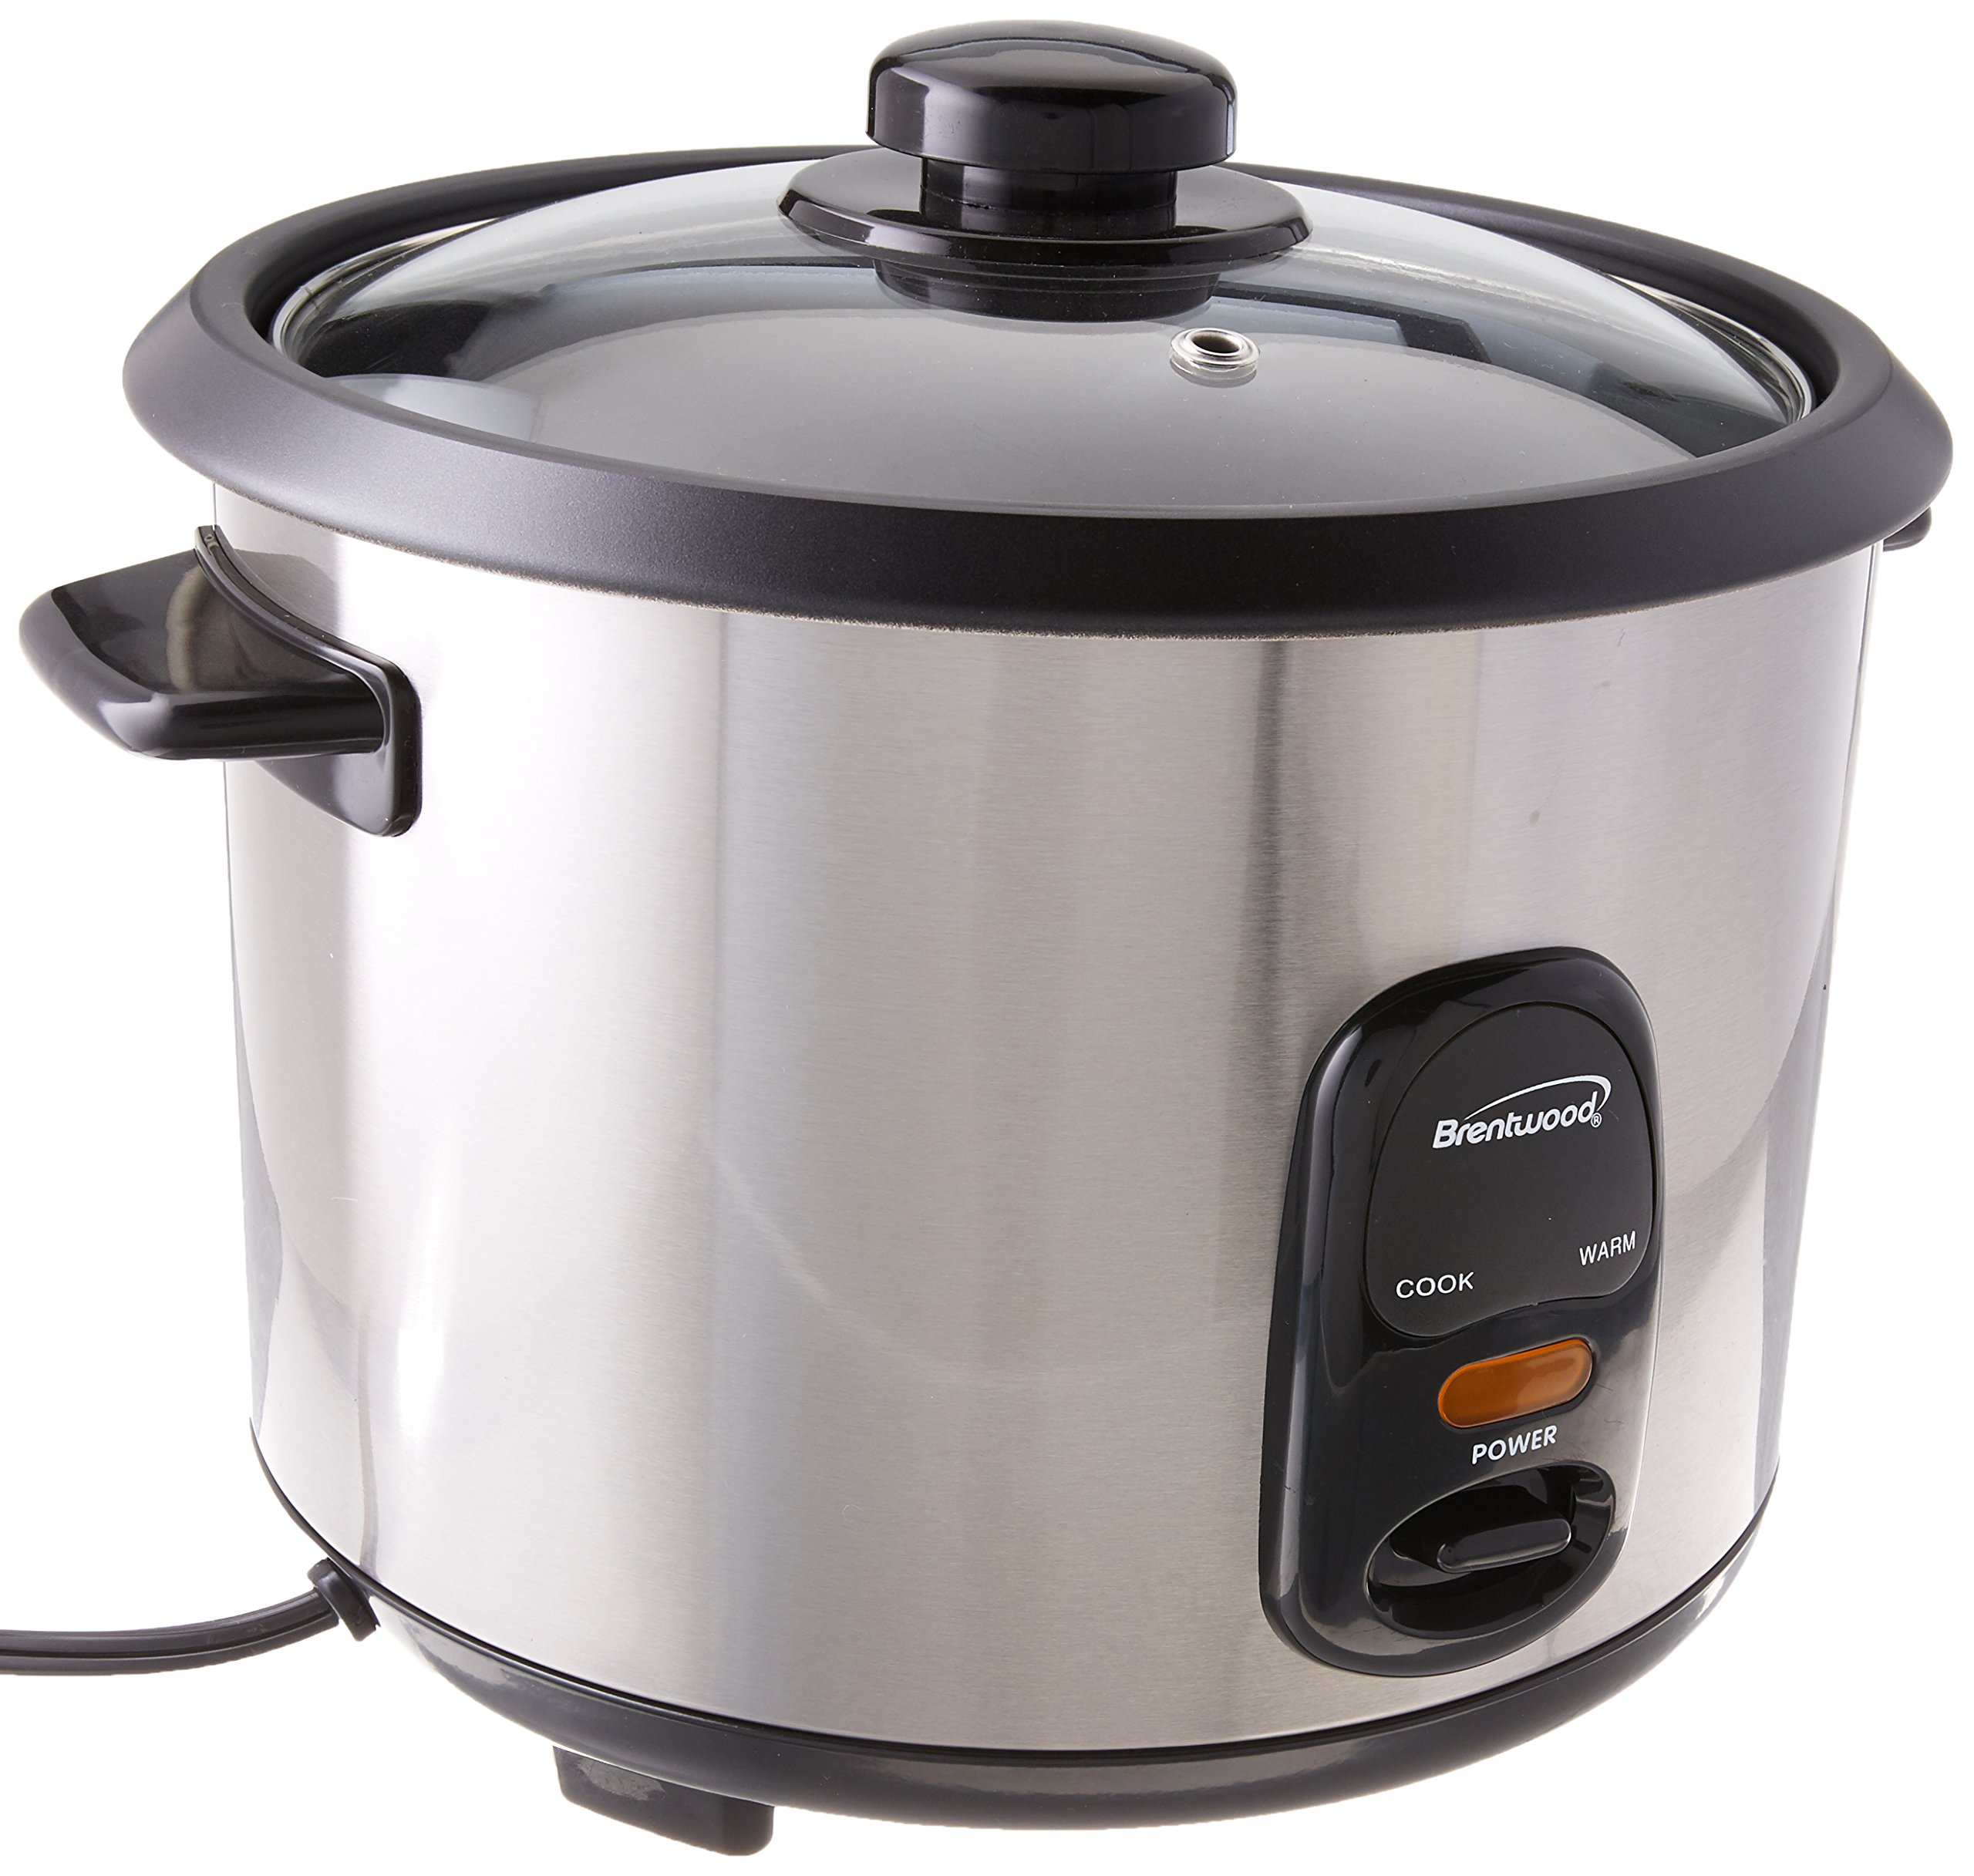 BRENTWOOD TS-20 Stainless Steel 10-Cup Rice Cooker - TWO YEARS